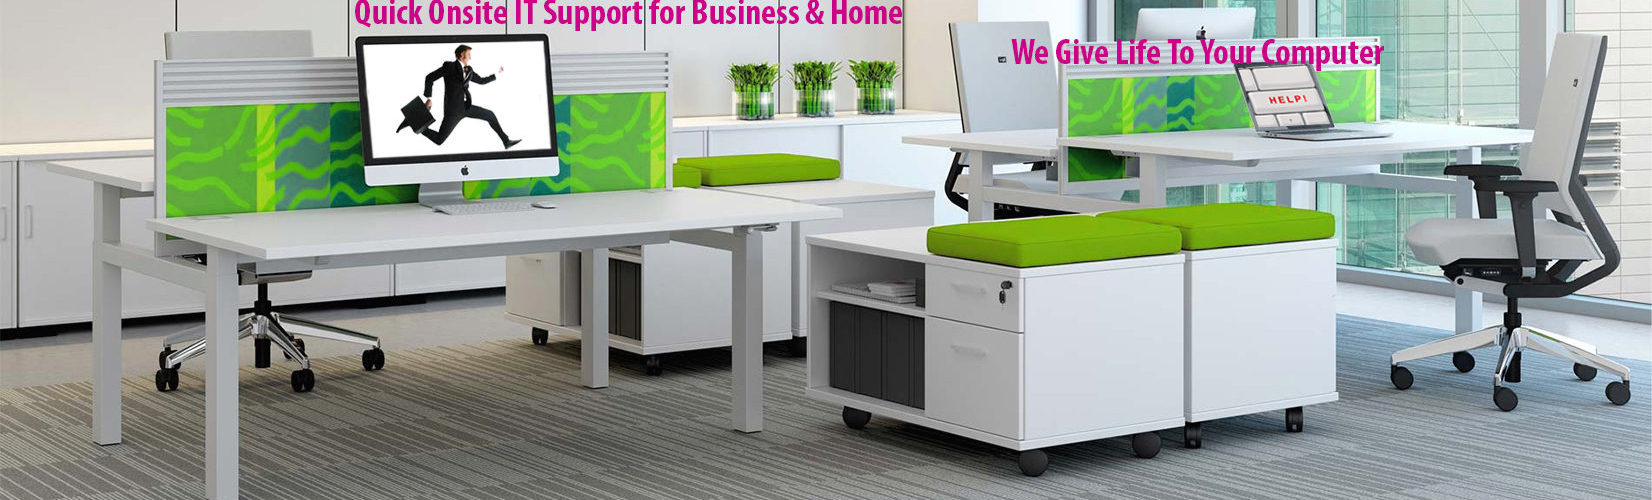 Onsite-IT-Support-Services-in-Dubai